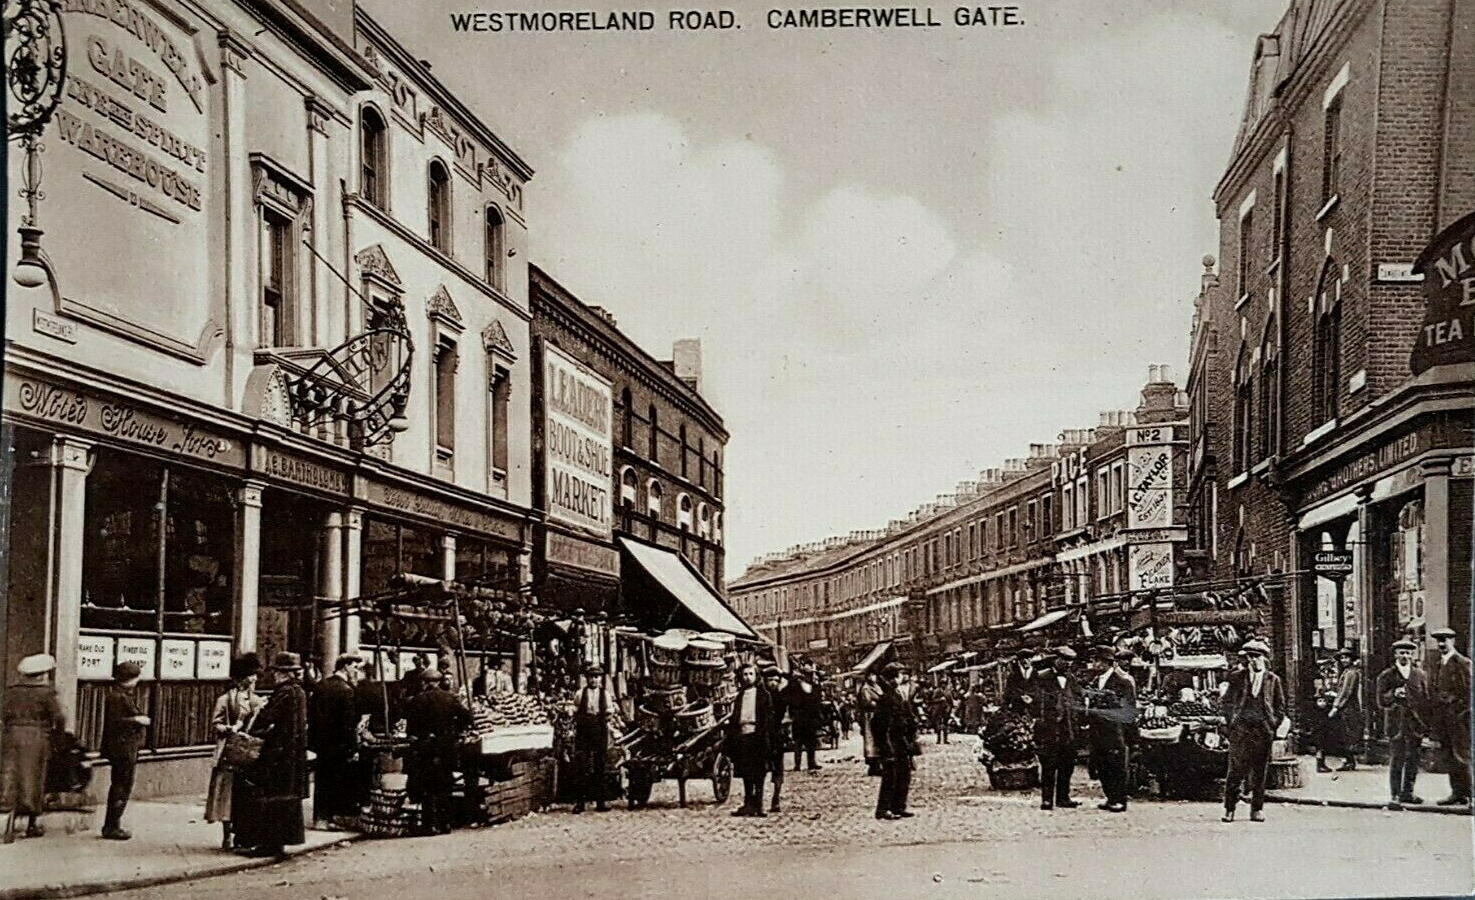 WESTMORELAND ROAD,RED LION PUB LEFT.MOORES BROS TEA ROOMS ON THE RIGHT.     X (2).png